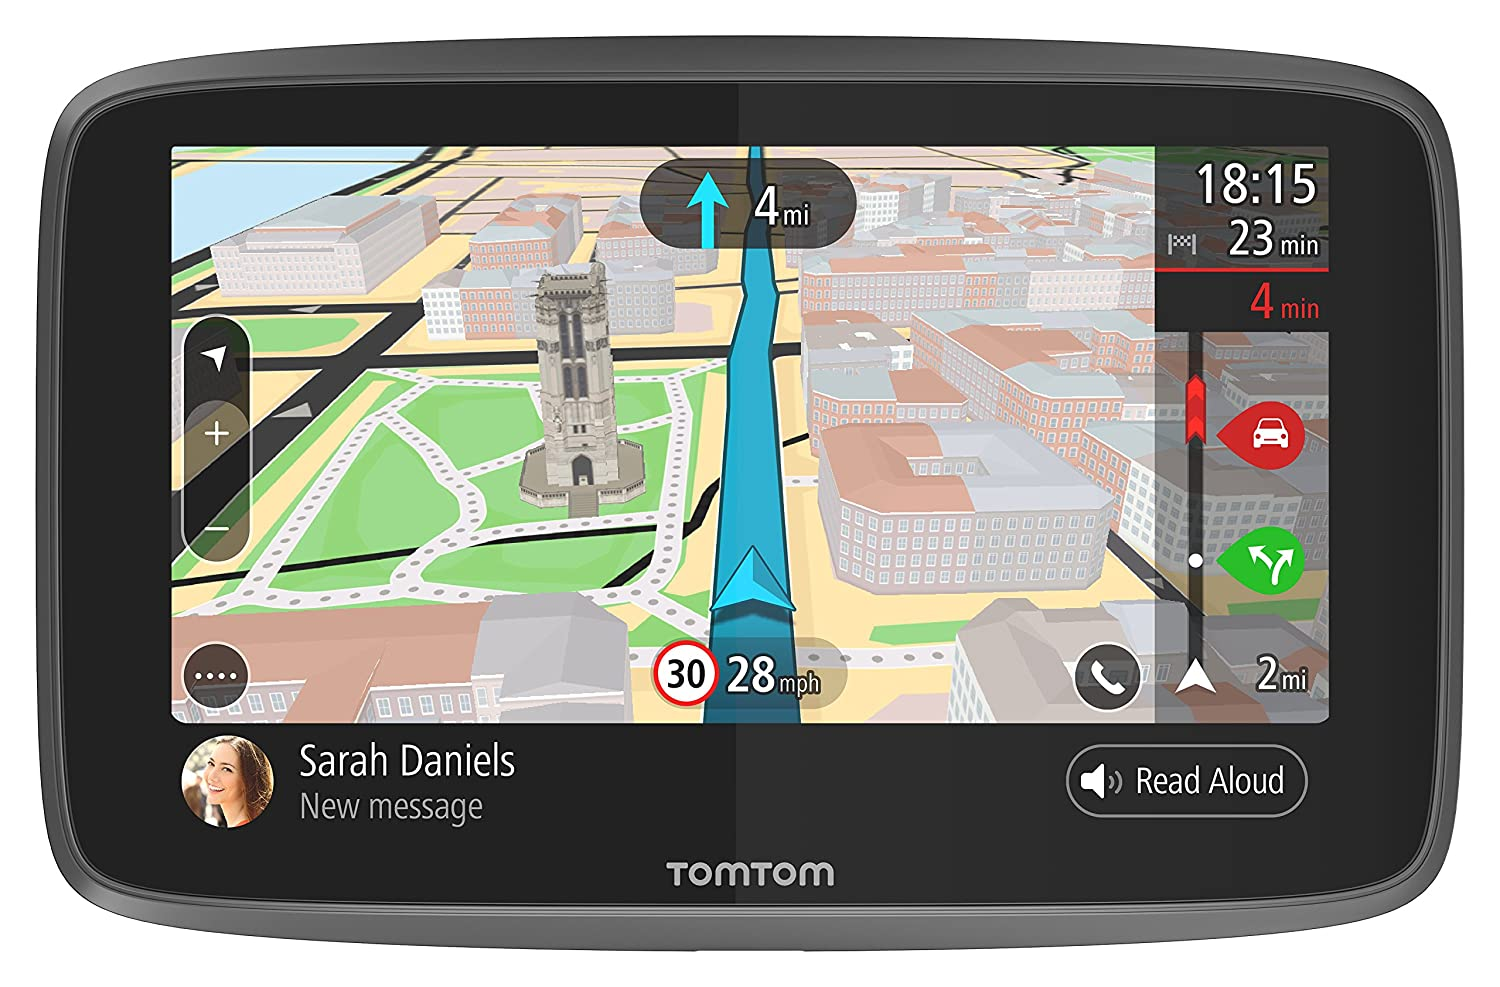 TomTom Car Sat Nav GO 6200, 6 Inch with Handsfree Calling, Siri, Google Now, Updates via WiFi, Lifetime Traffic via SIM Card and World Maps, Smartphone Messages, Capacitive Screen 4PL60